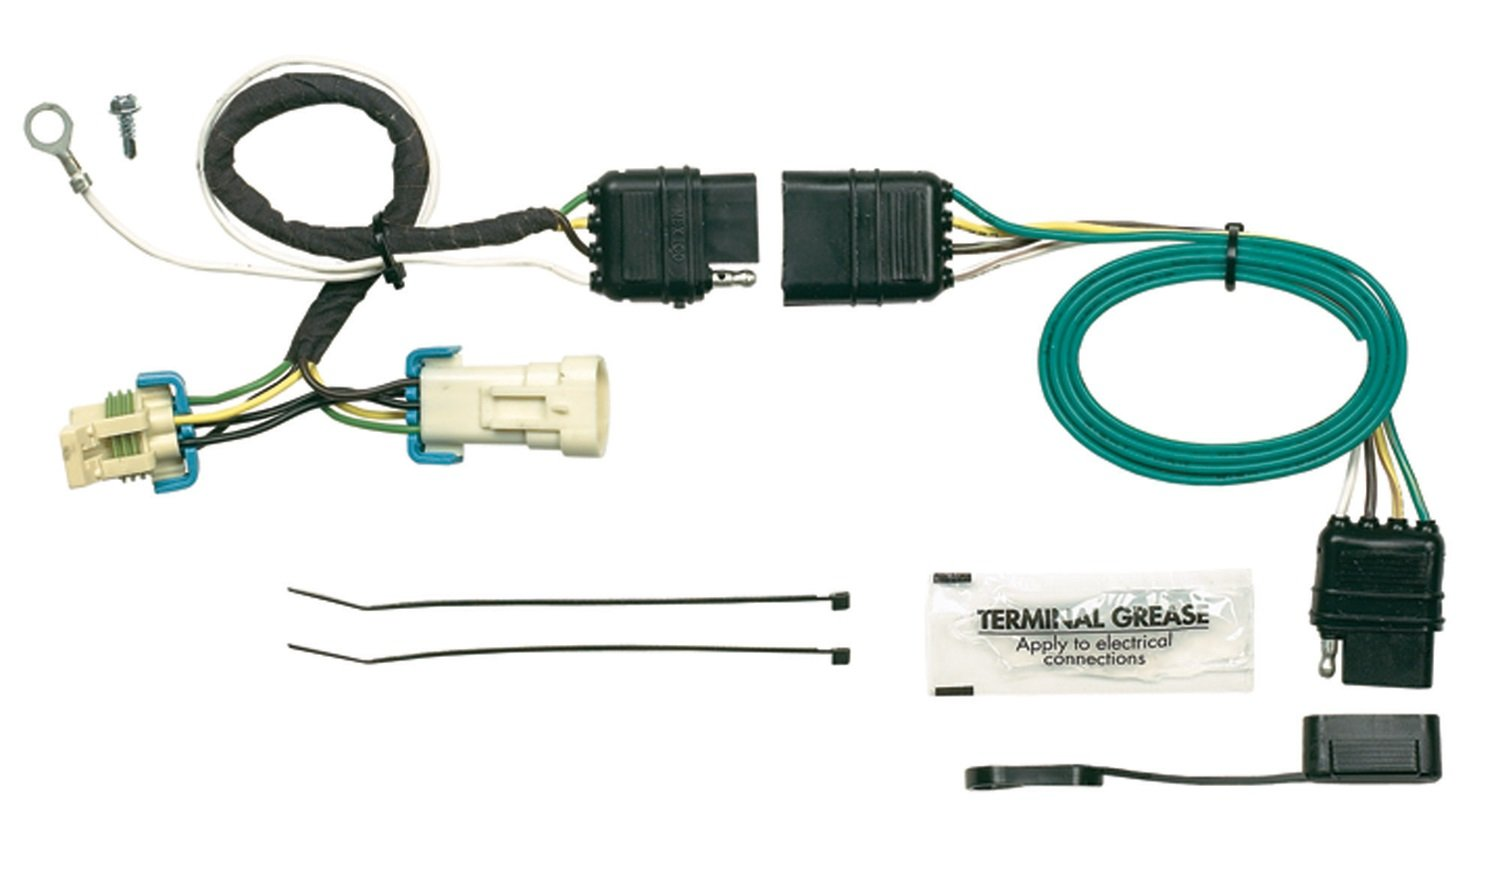 Hopkins 41135 Plug In Simple Vehicle Wiring Kit Automotive Trailer Diagram Diy Teardrop